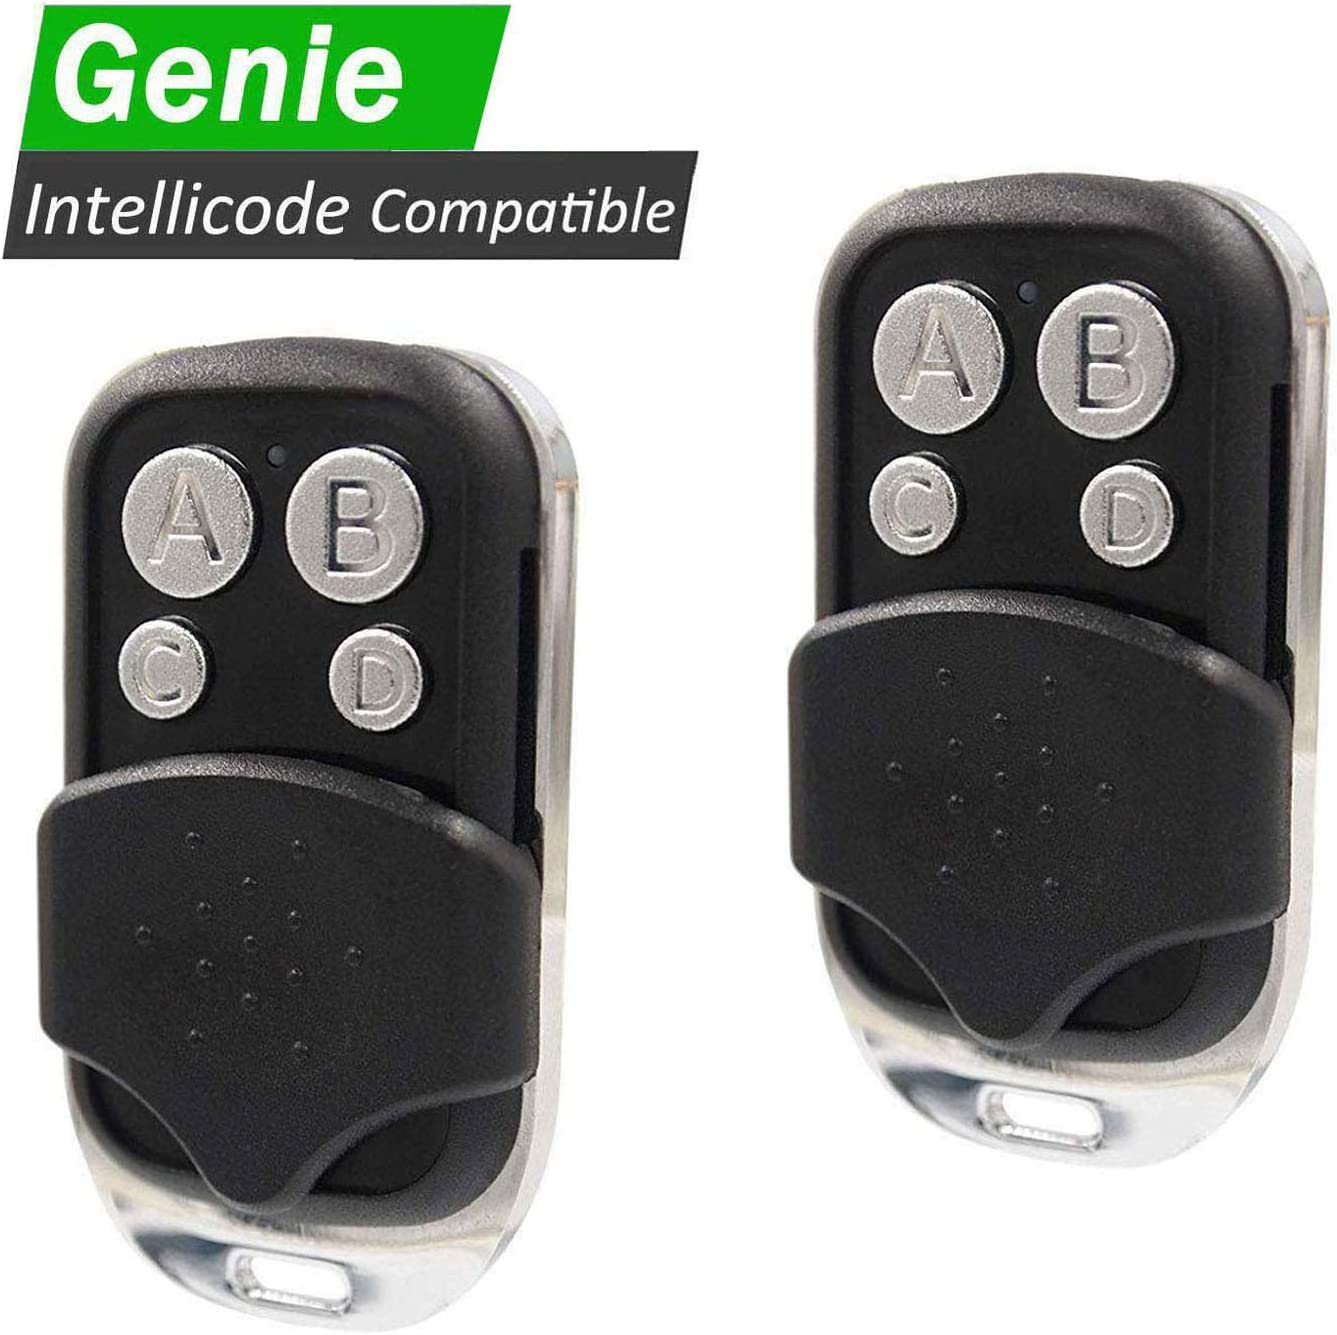 2 Pack - Replacement for Genie G3T-R G1T-BX GITR-3 GIT-1 GIT-2 GIT-3 - Overhead Door O1T-BX O3T-BX OCDTR-3 Remote - Compatible with Intellicode & CodeDodger Garage Door Openers (C-IC)